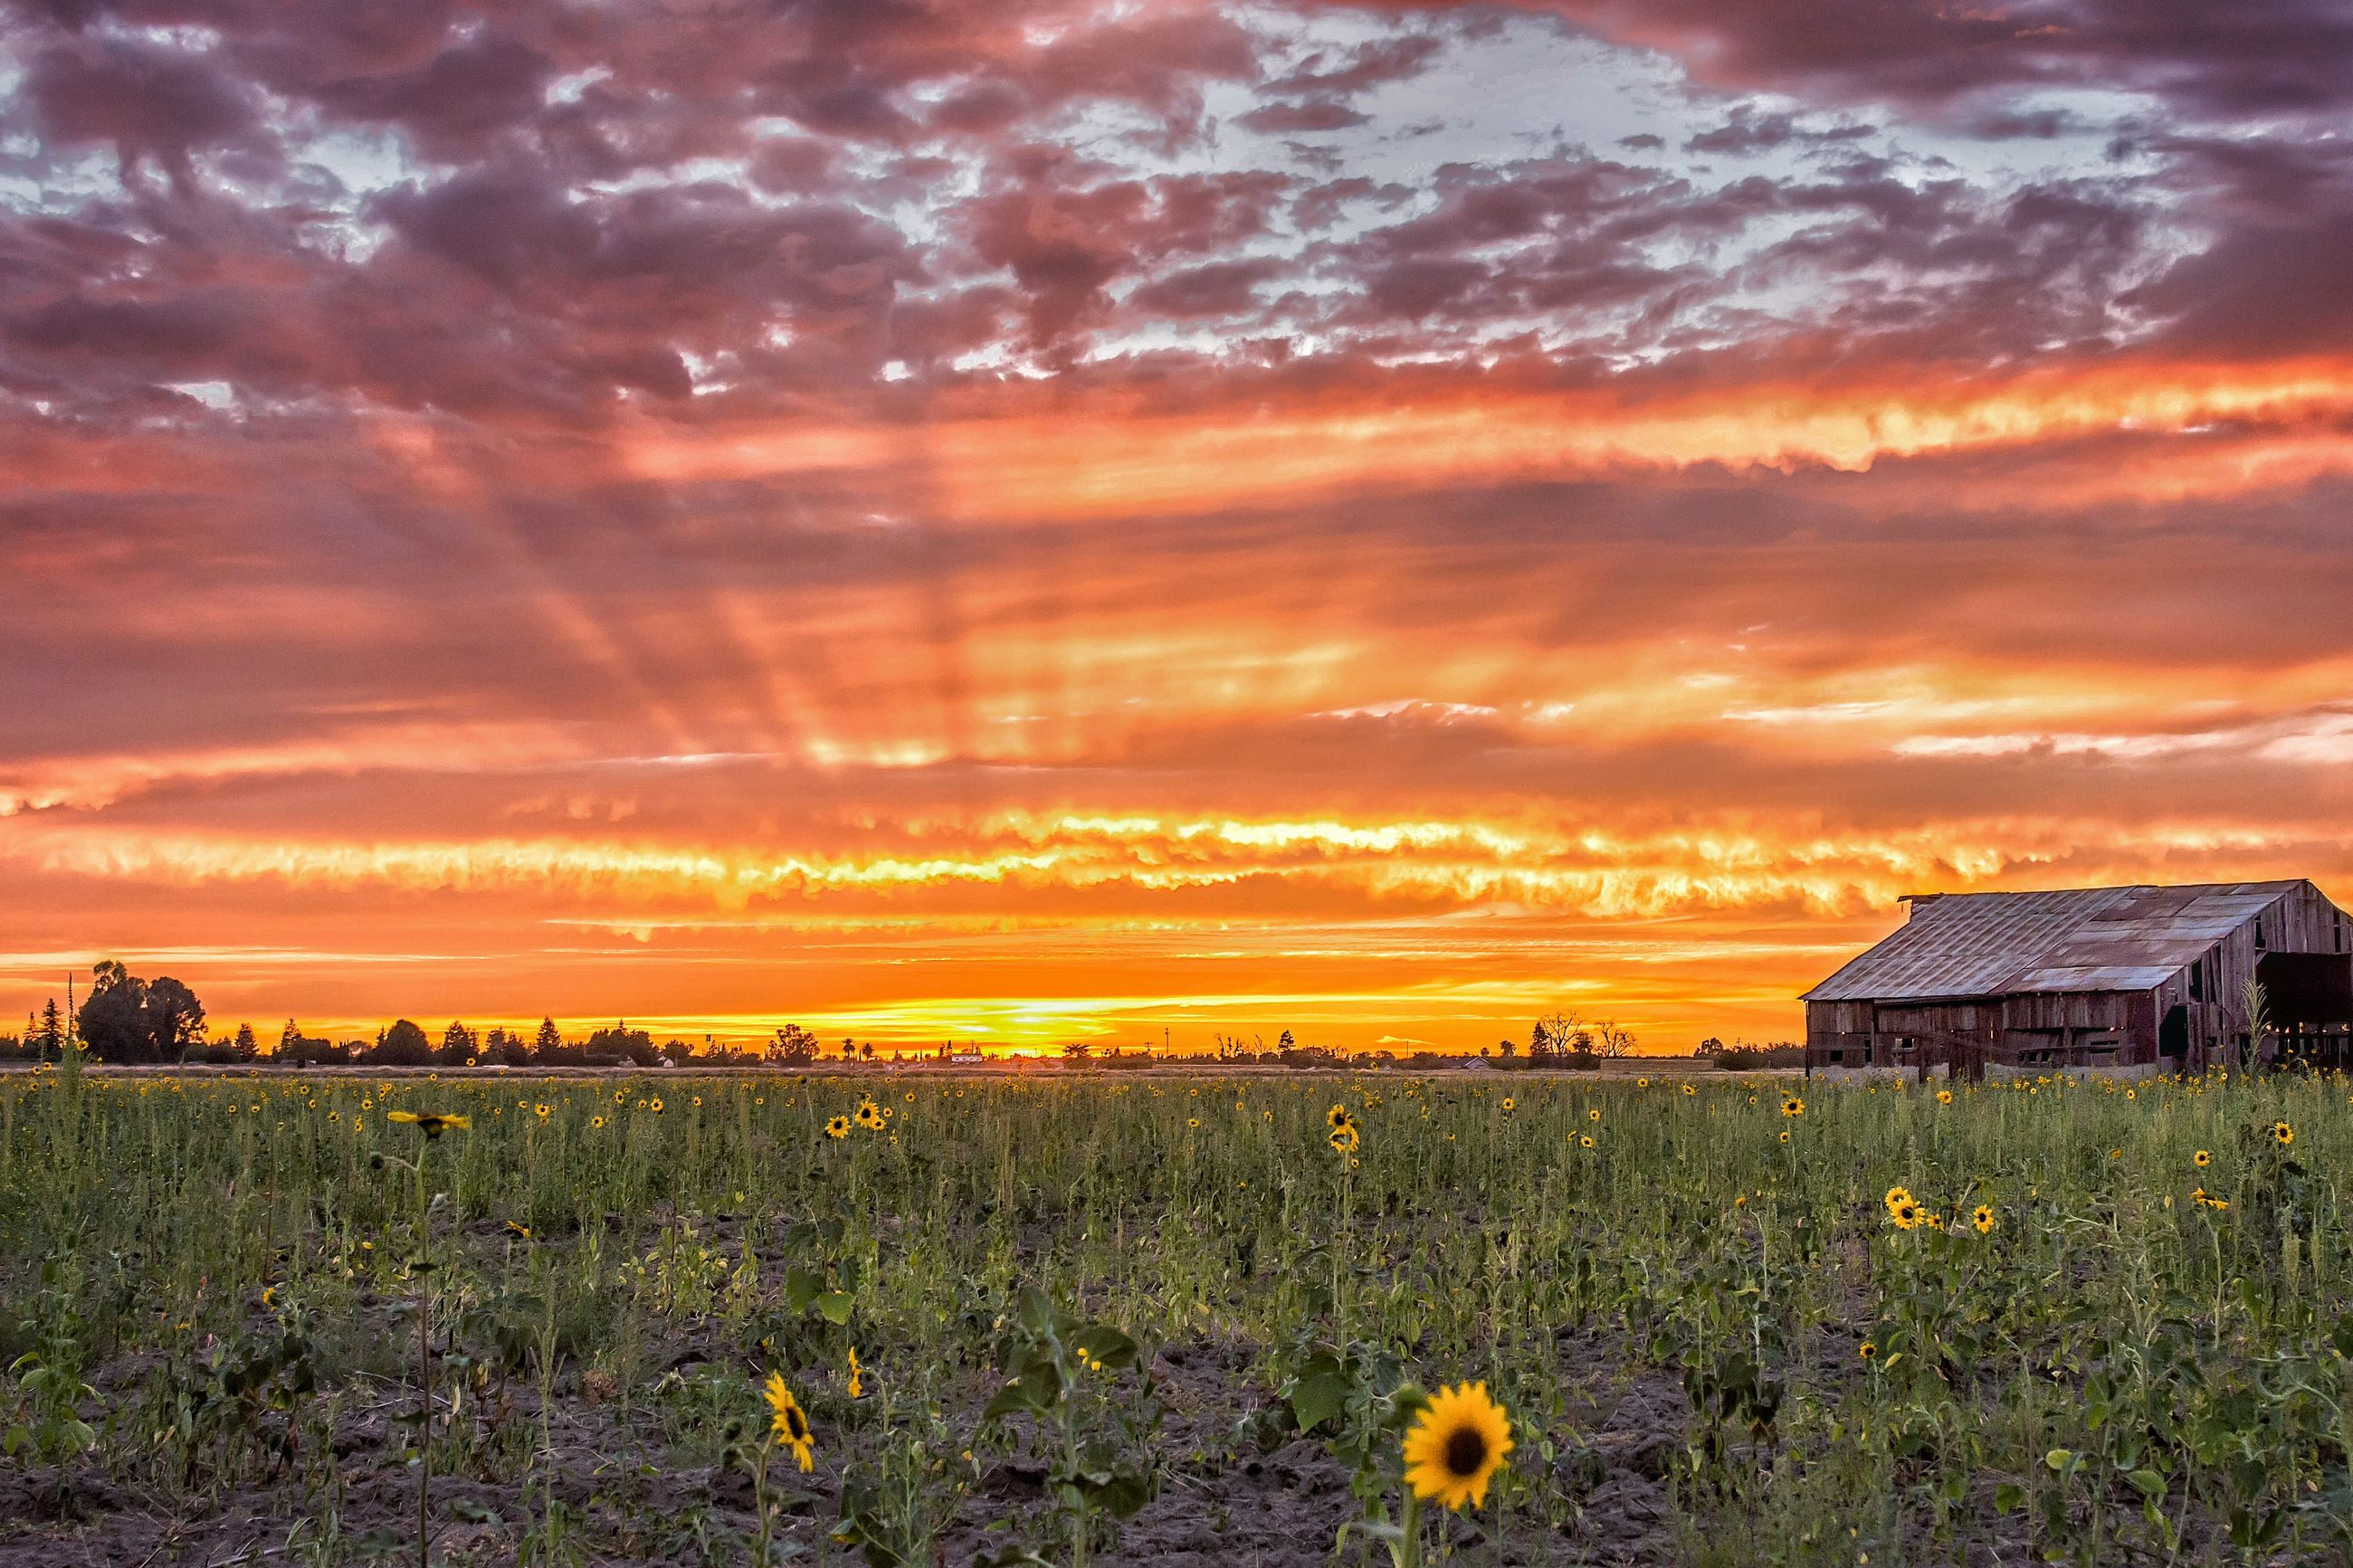 sunset, nature, beauty in nature, cloud - sky, field, sky, growth, plant, orange color, built structure, dramatic sky, scenics, architecture, tranquil scene, outdoors, building exterior, no people, tranquility, landscape, flower, rural scene, agriculture, yellow, grass, day, freshness